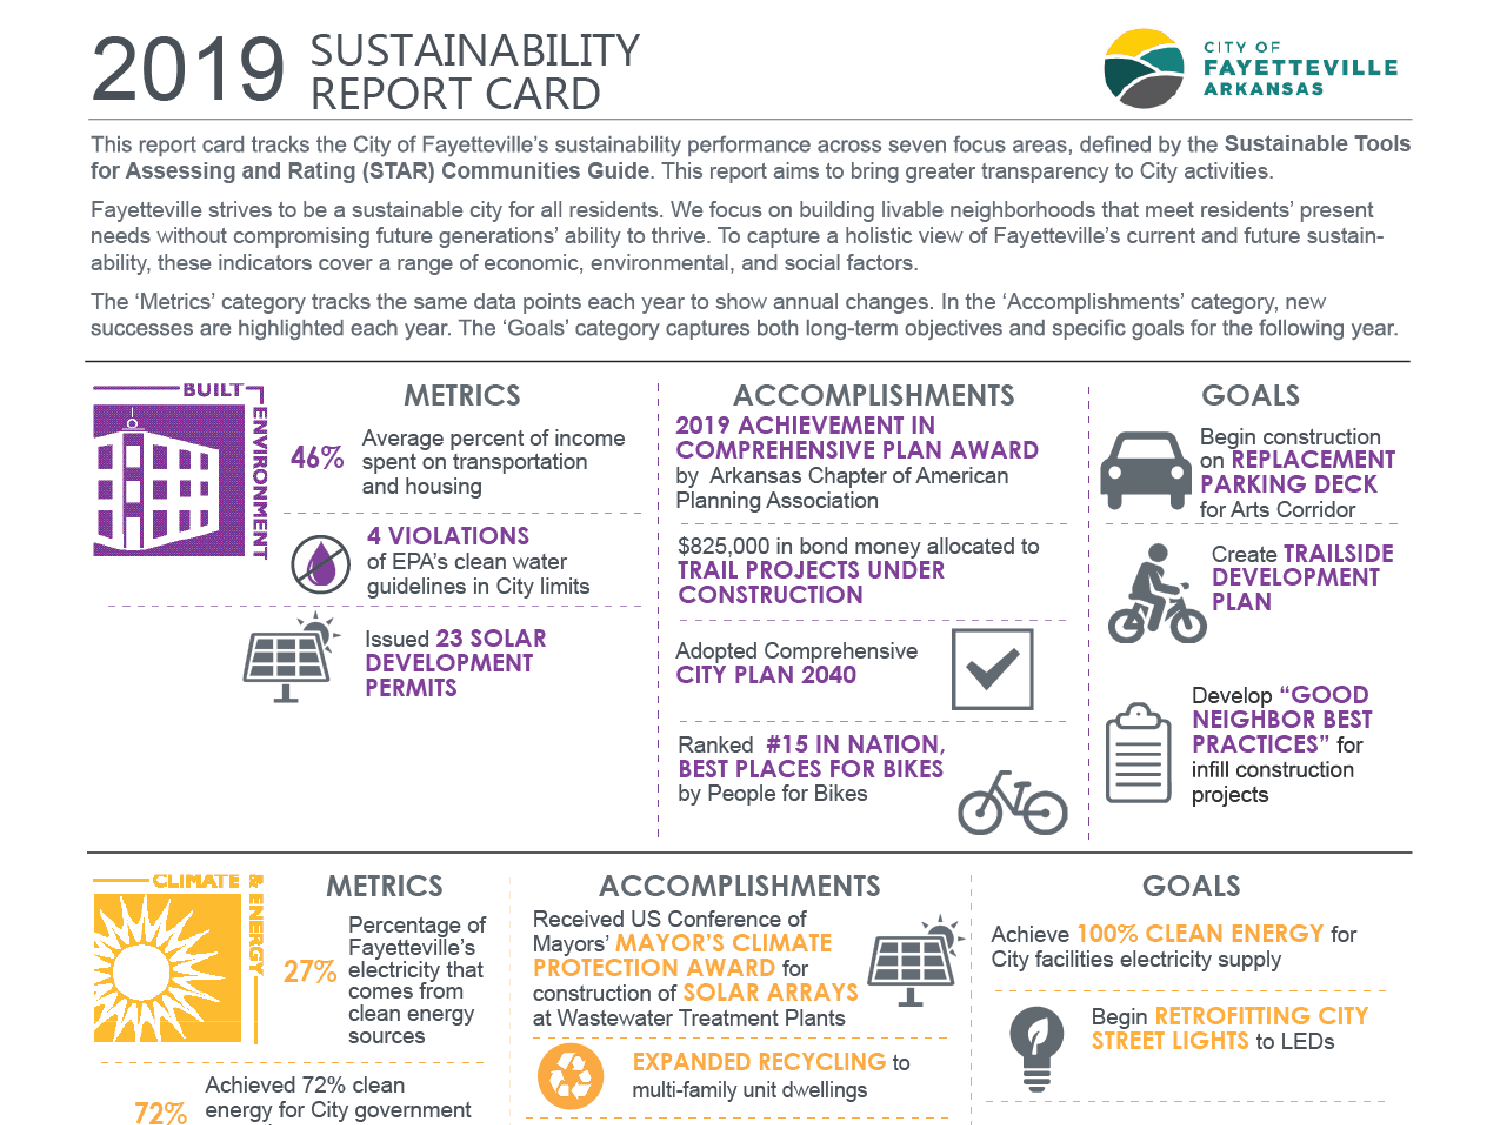 2019 Sustainability report card image